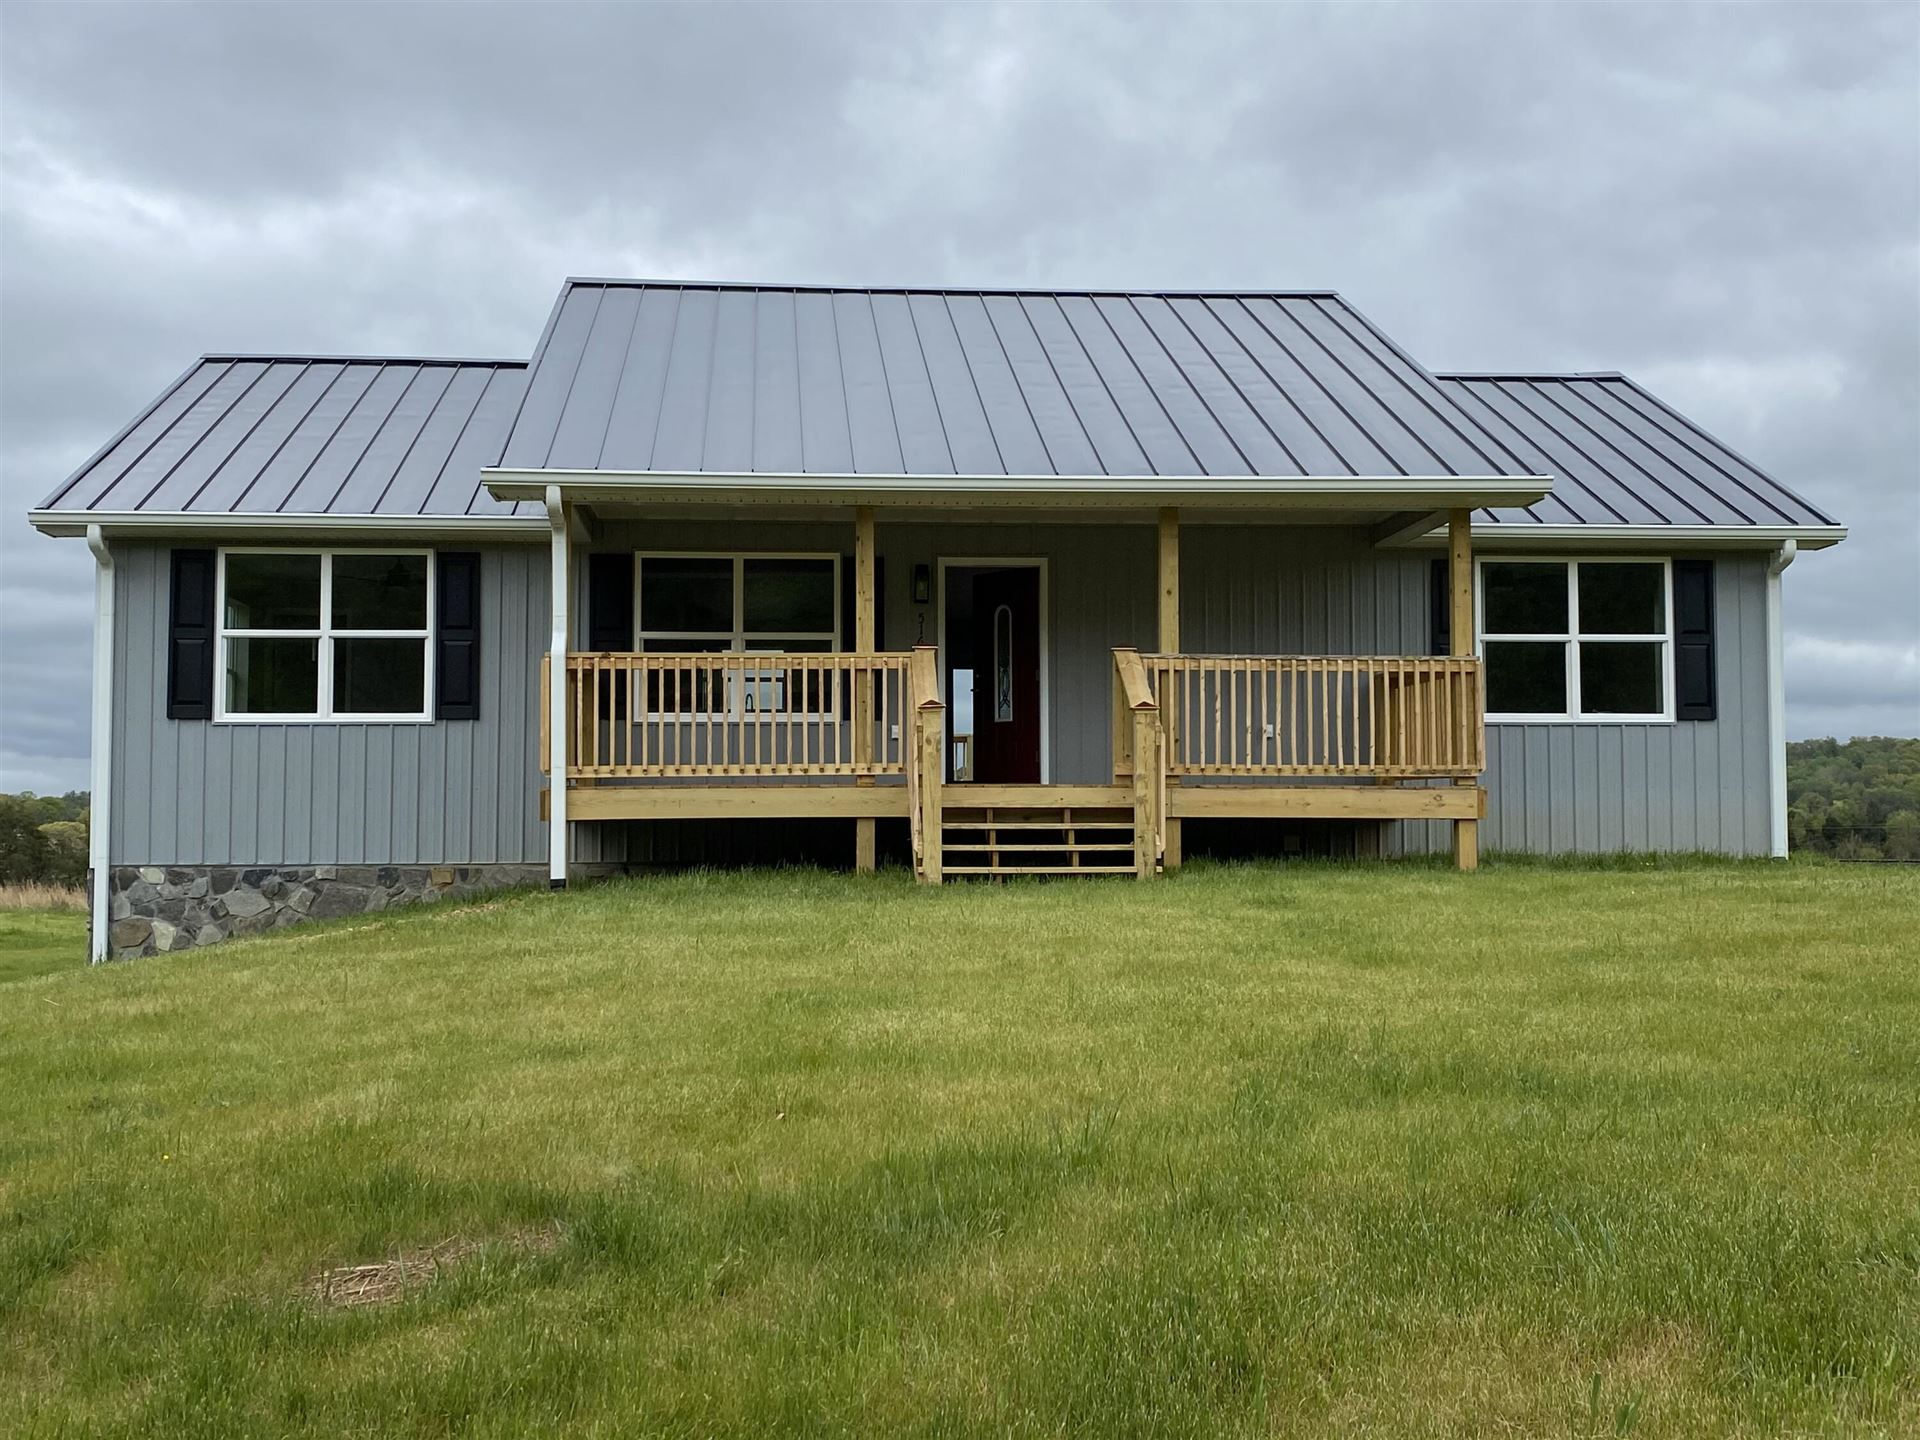 Photo of 5160 Old Stage Rd., Chuckey, TN 37641 (MLS # 9922822)